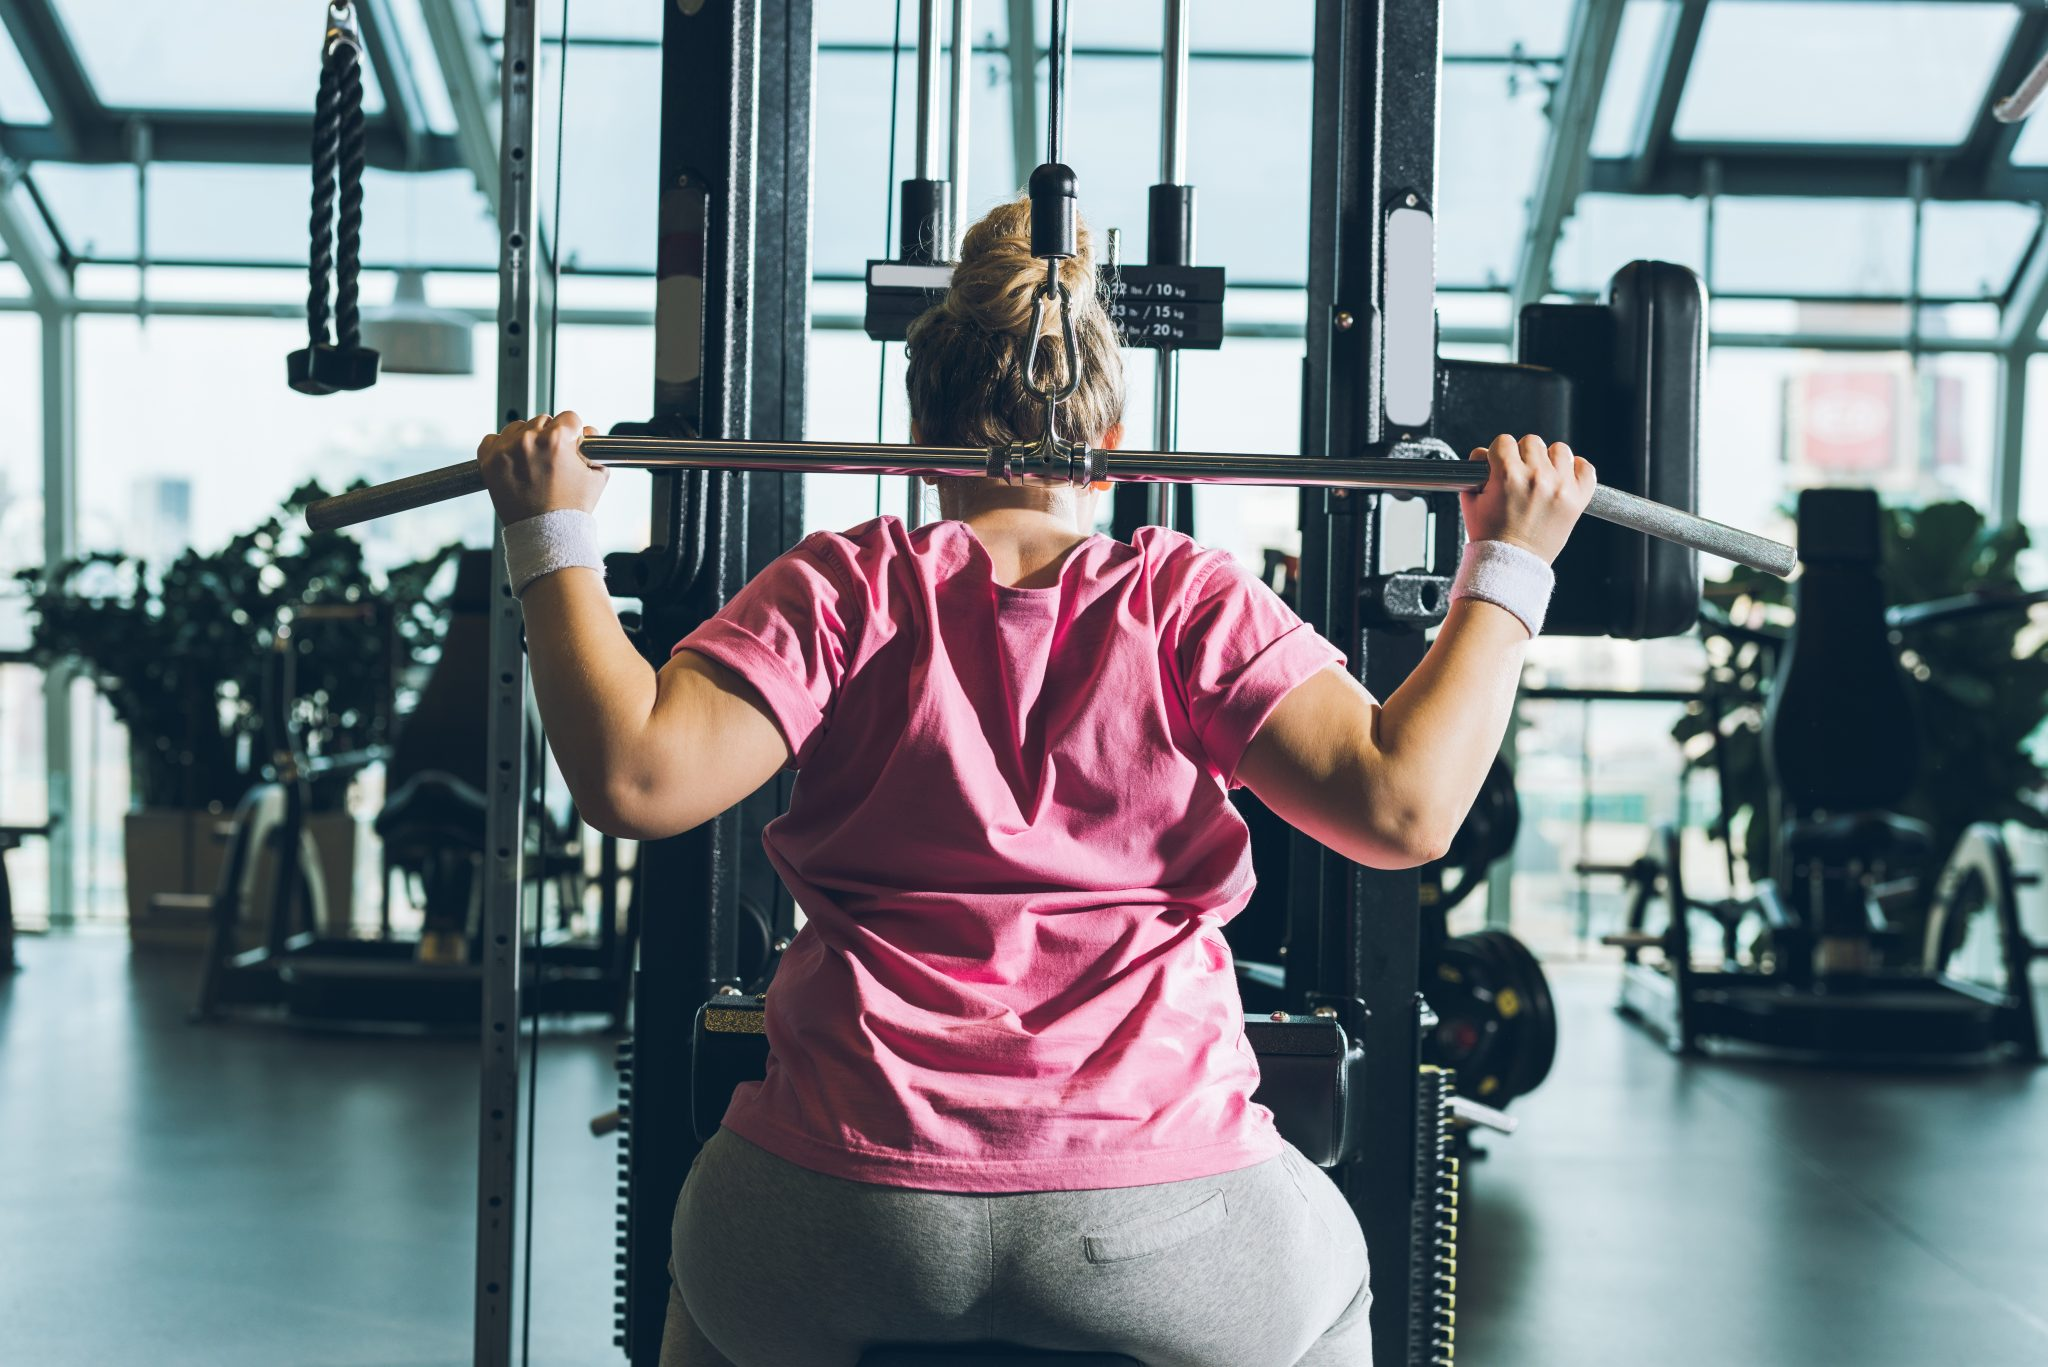 strong woman working out on training apparatus